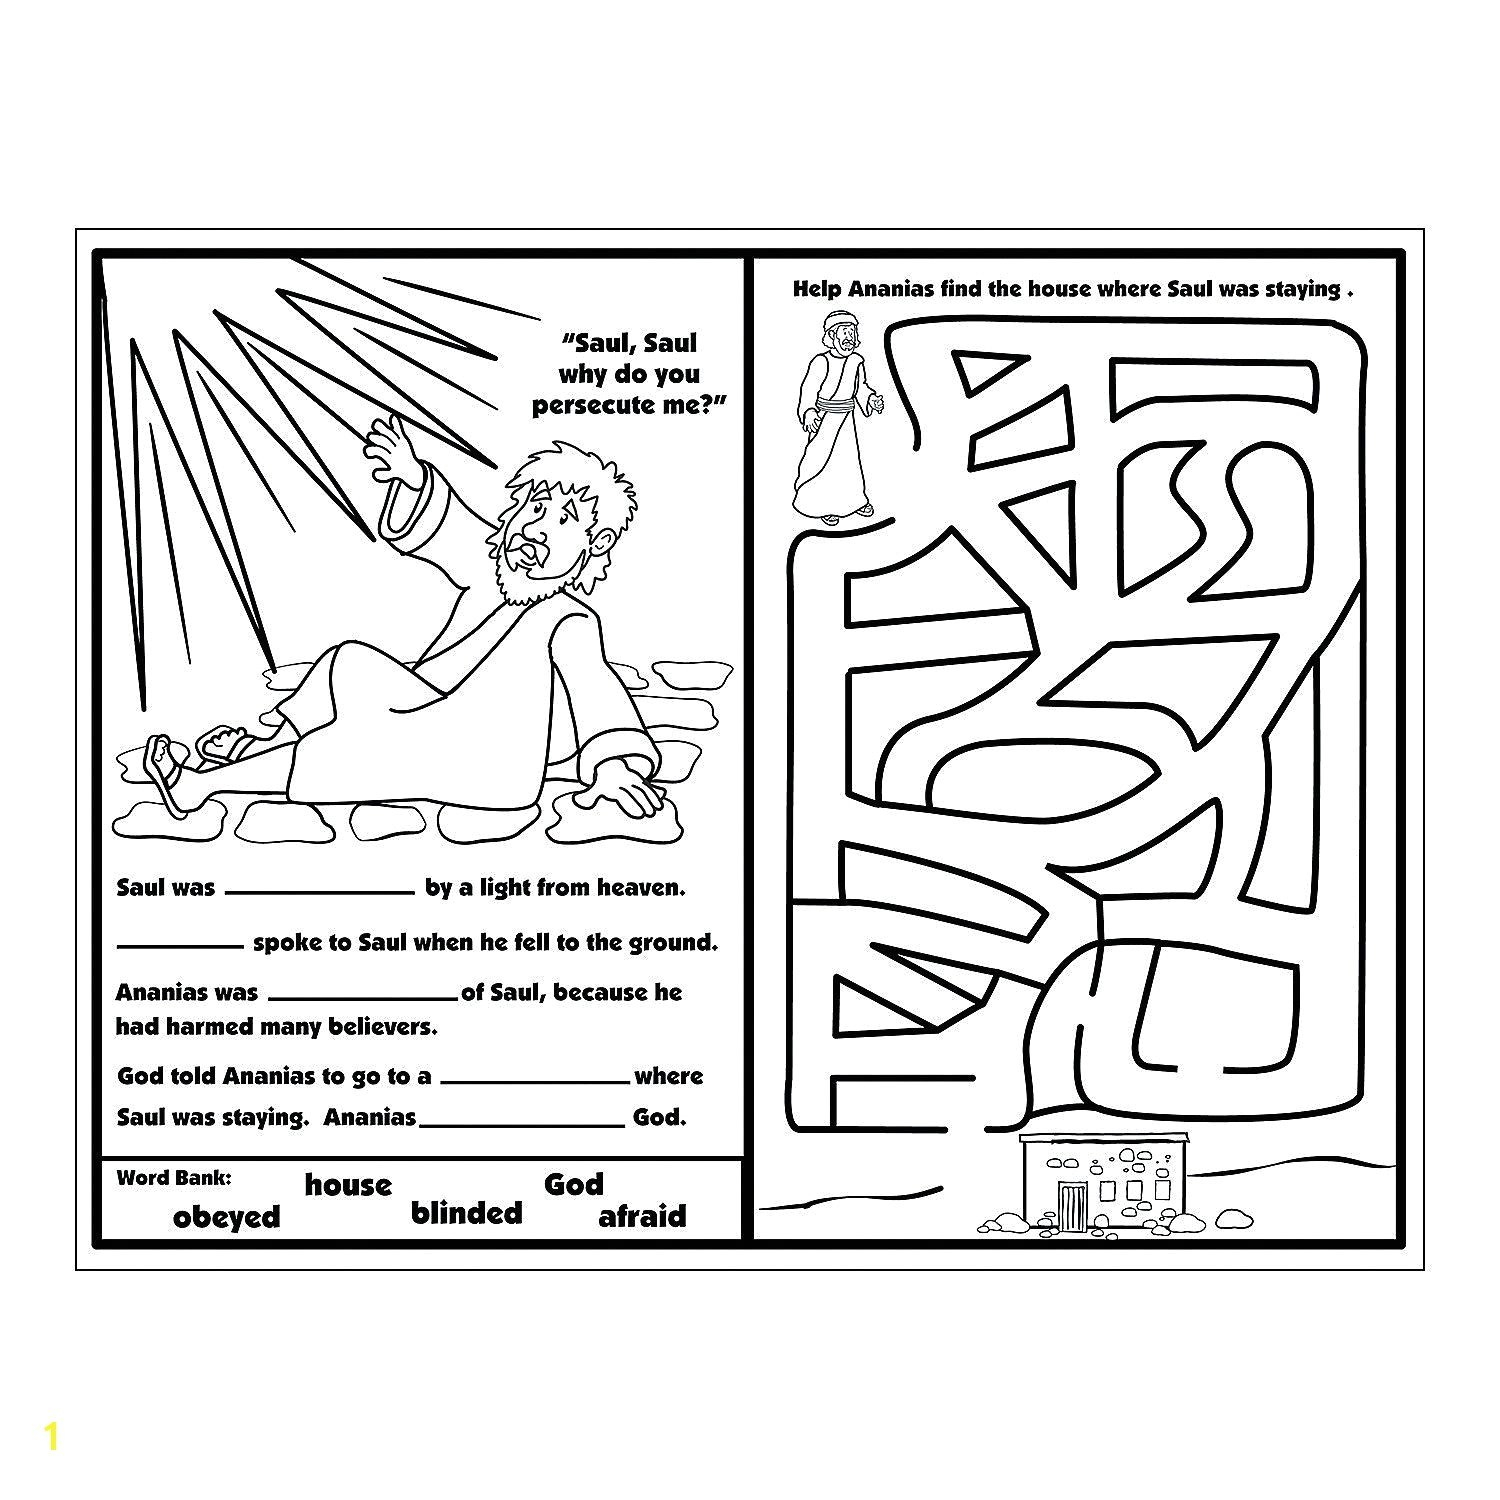 Paul Coloring Pages Ananias And Paul Coloring Pages Beautiful Part 160